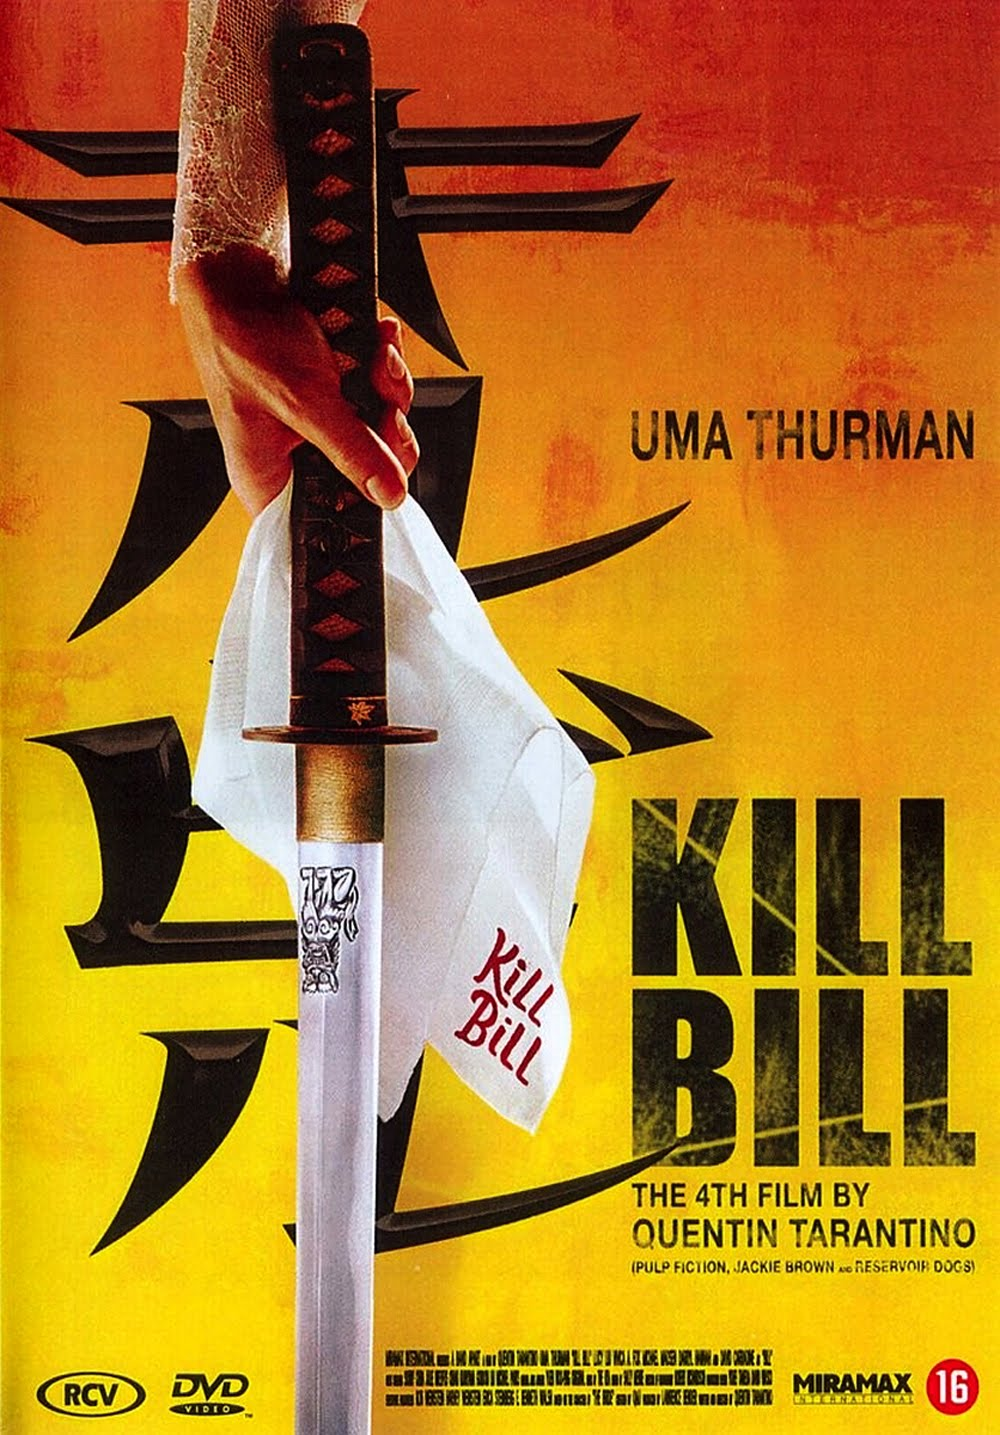 'kill bill vol 1' 2003 Watch kill bill: vol 1 2003: the lead character, called 'the bride,' was a member of the deadly viper assassination squad, led by her lover 'bill' upon realizing she was pregnant with bill's child, 'the bride' decided to escape her life as a killer.